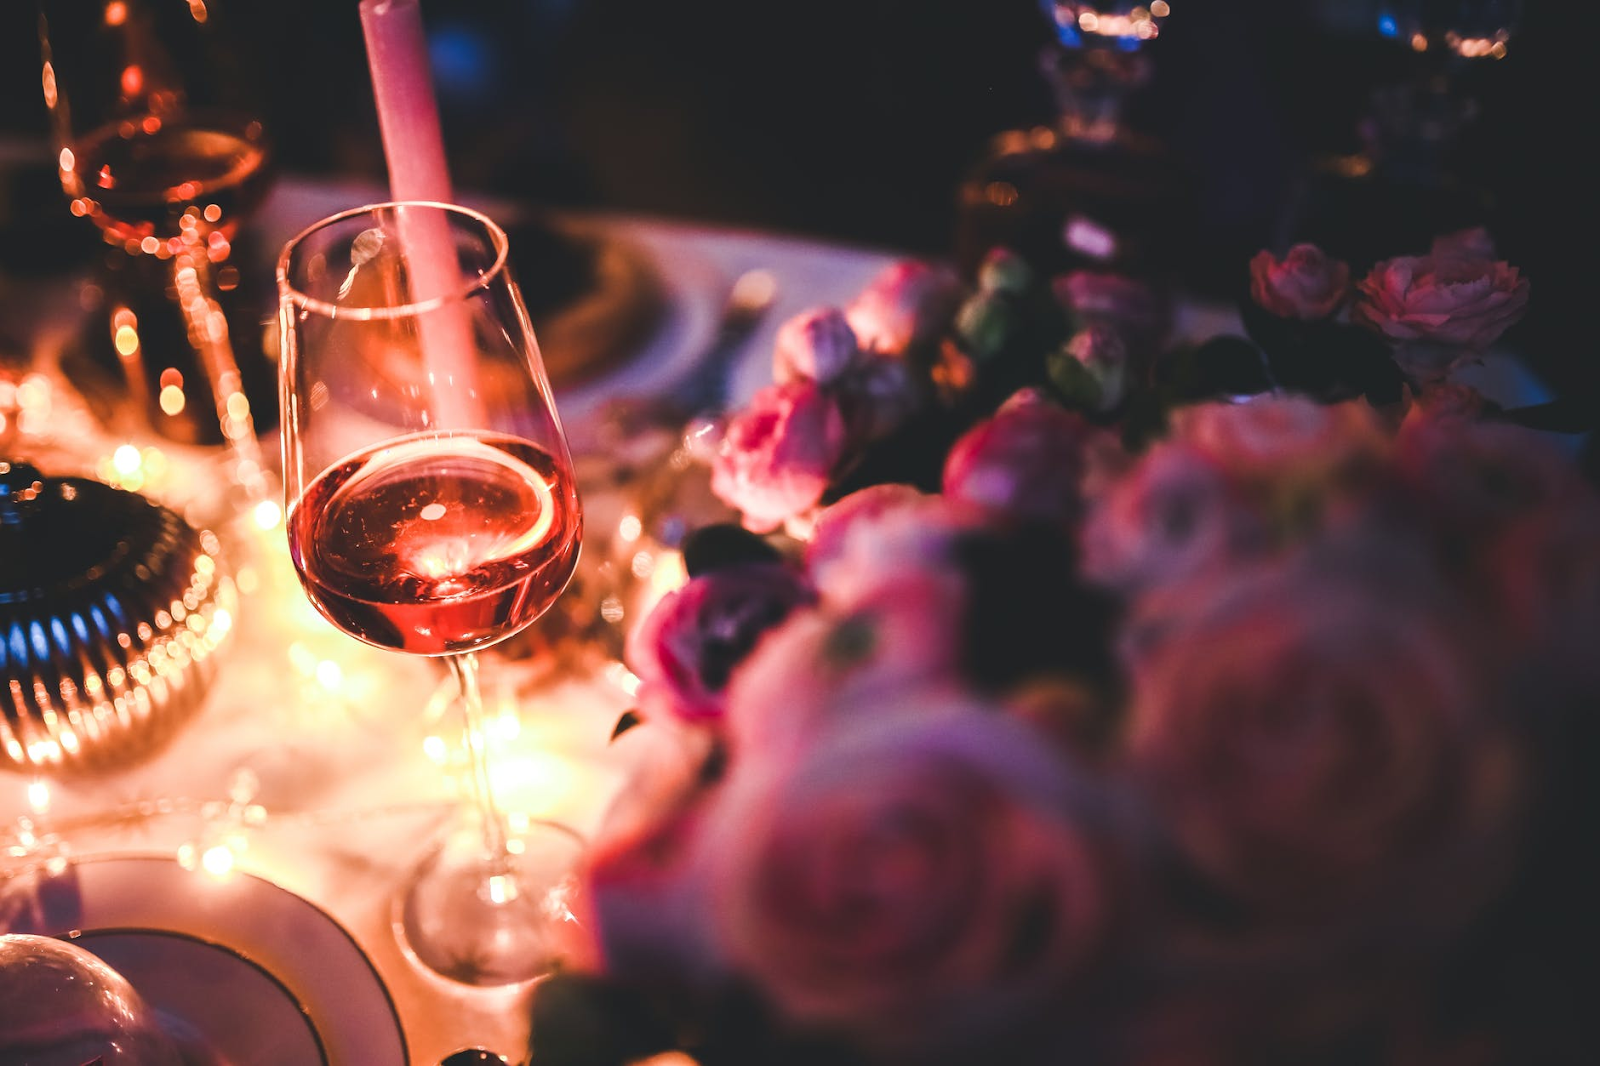 close-up of wine glass next to pink roses